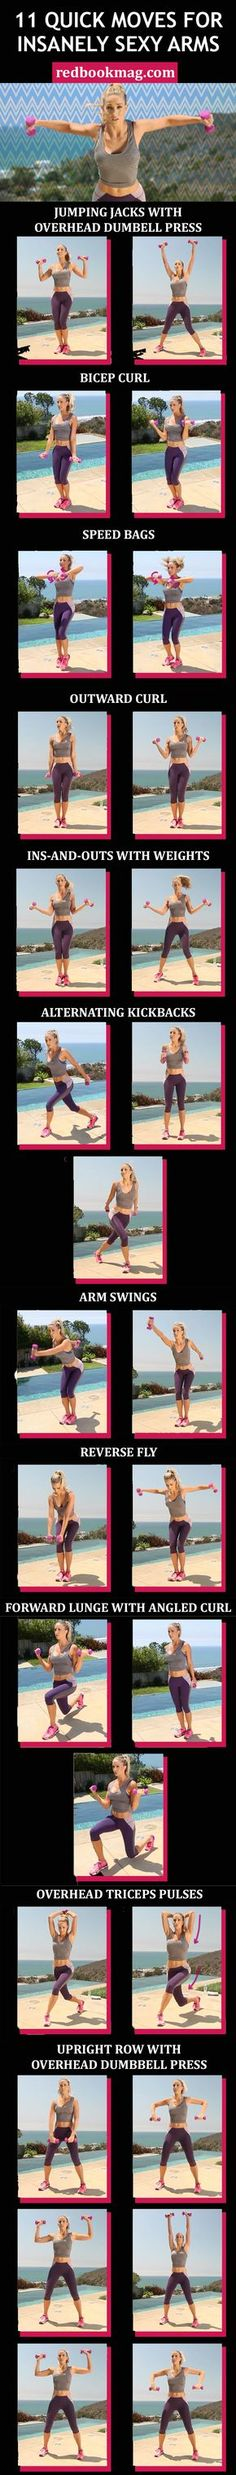 SEXY ARM WORKOUT FOR WOMEN: Grab a set of 2- to 3-pound dumbbells, and do 20 to 30 reps of each move in quick succession to tone your arms, back, chest, and legs. Repeat the entire sequence two to three times to get toned arms fast! Click through for the